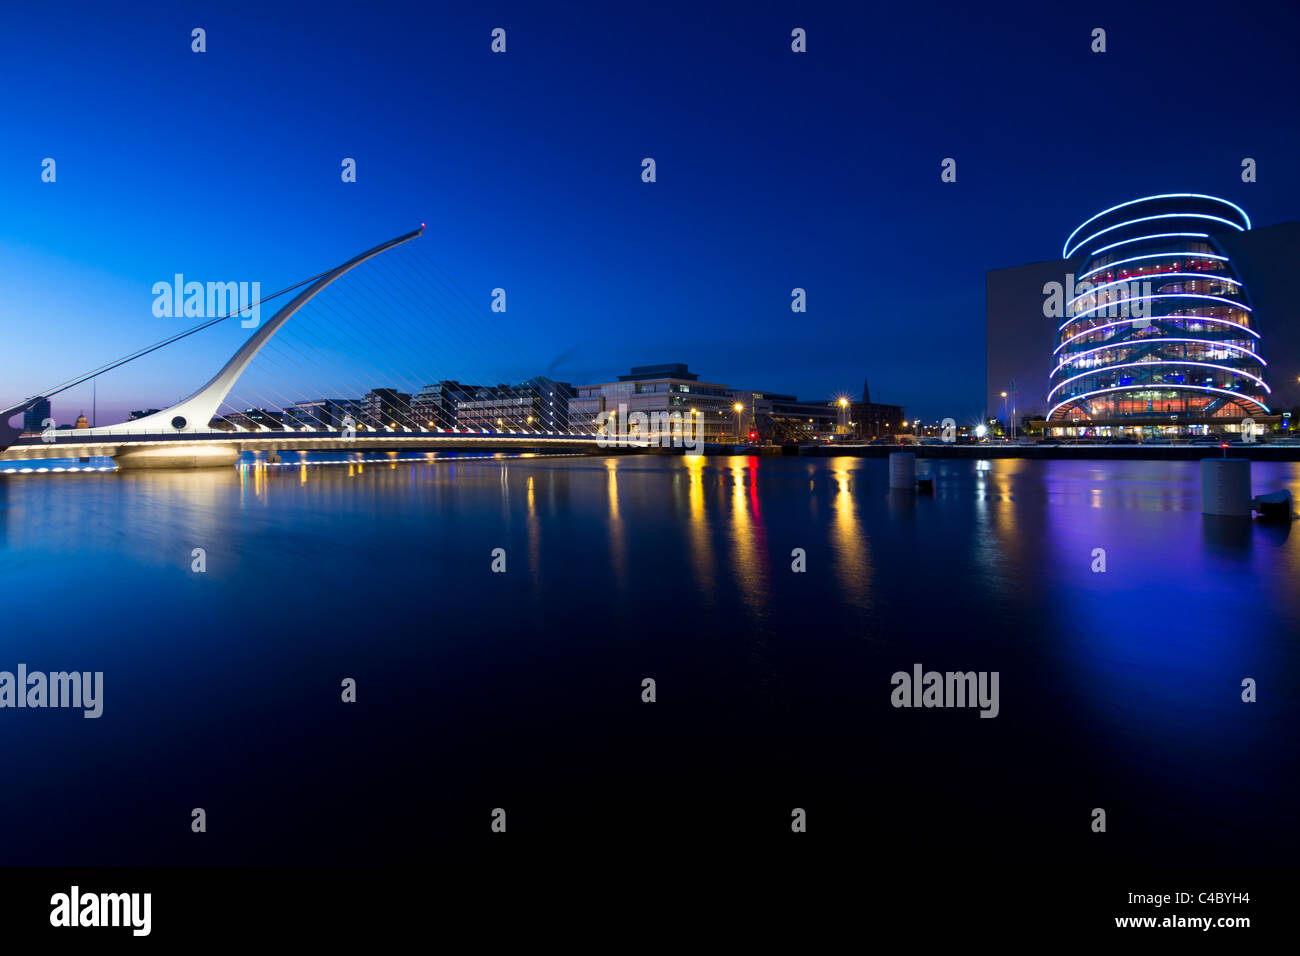 Samuel Beckett bridge, Dublin - Stock Image